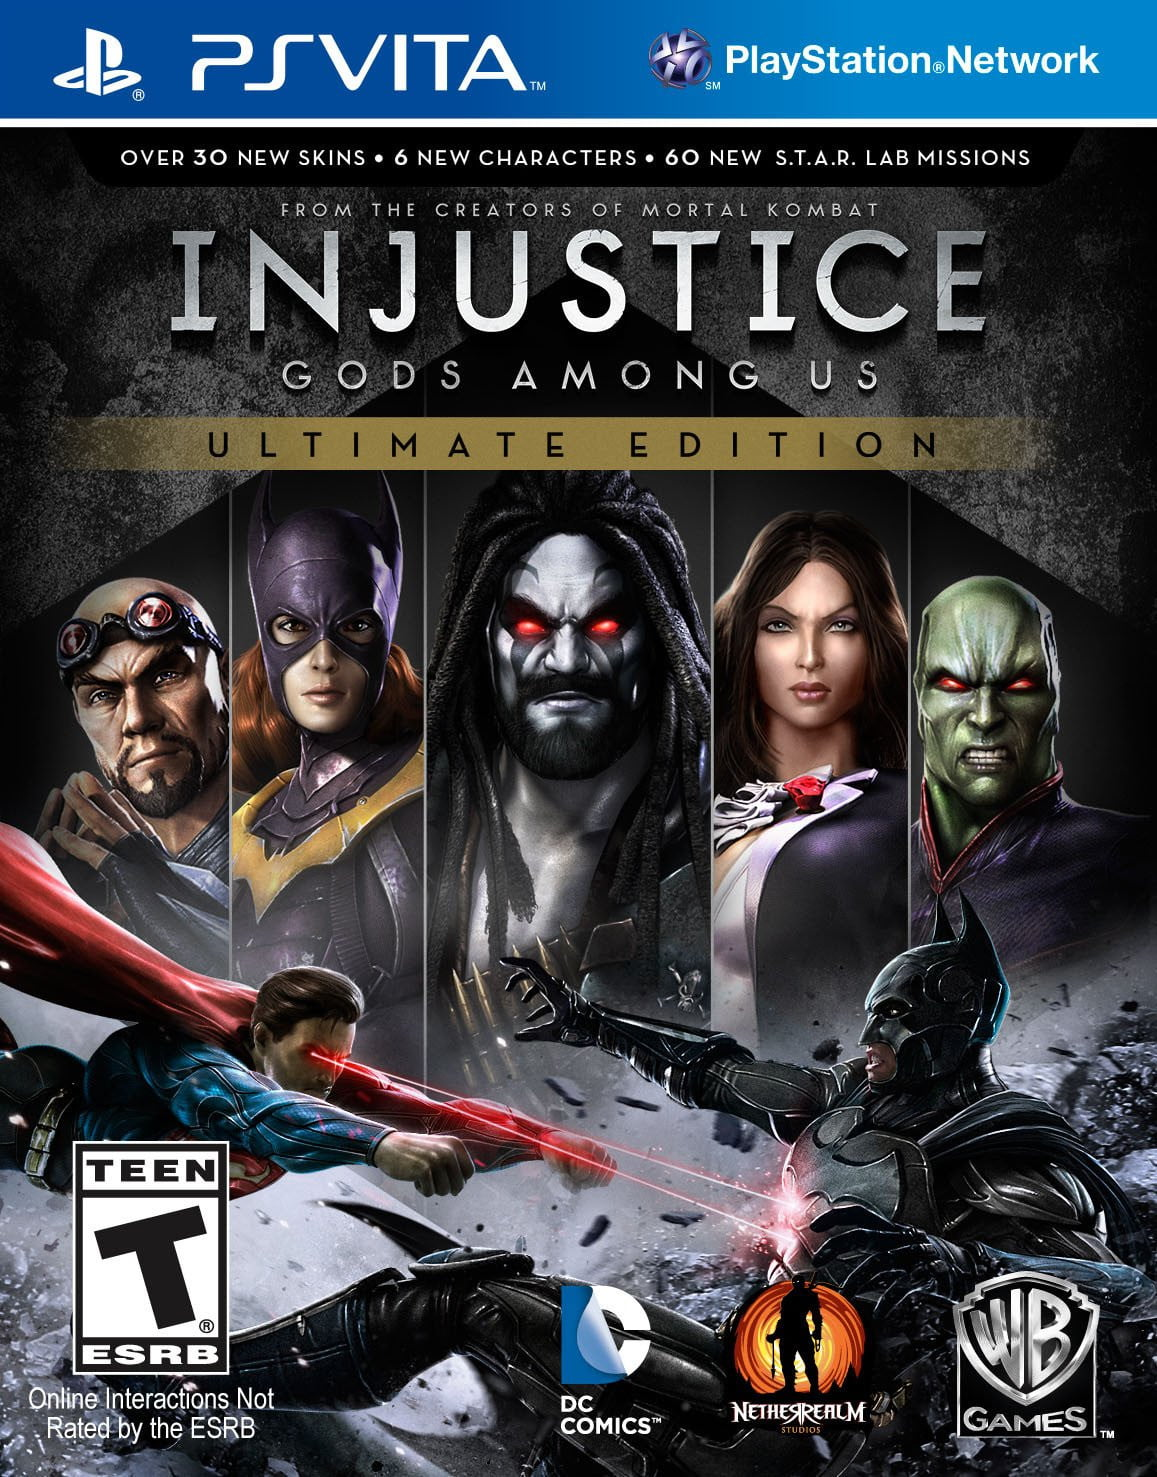 Injustice: Gods Among Us PS Vita - Shamy Stores